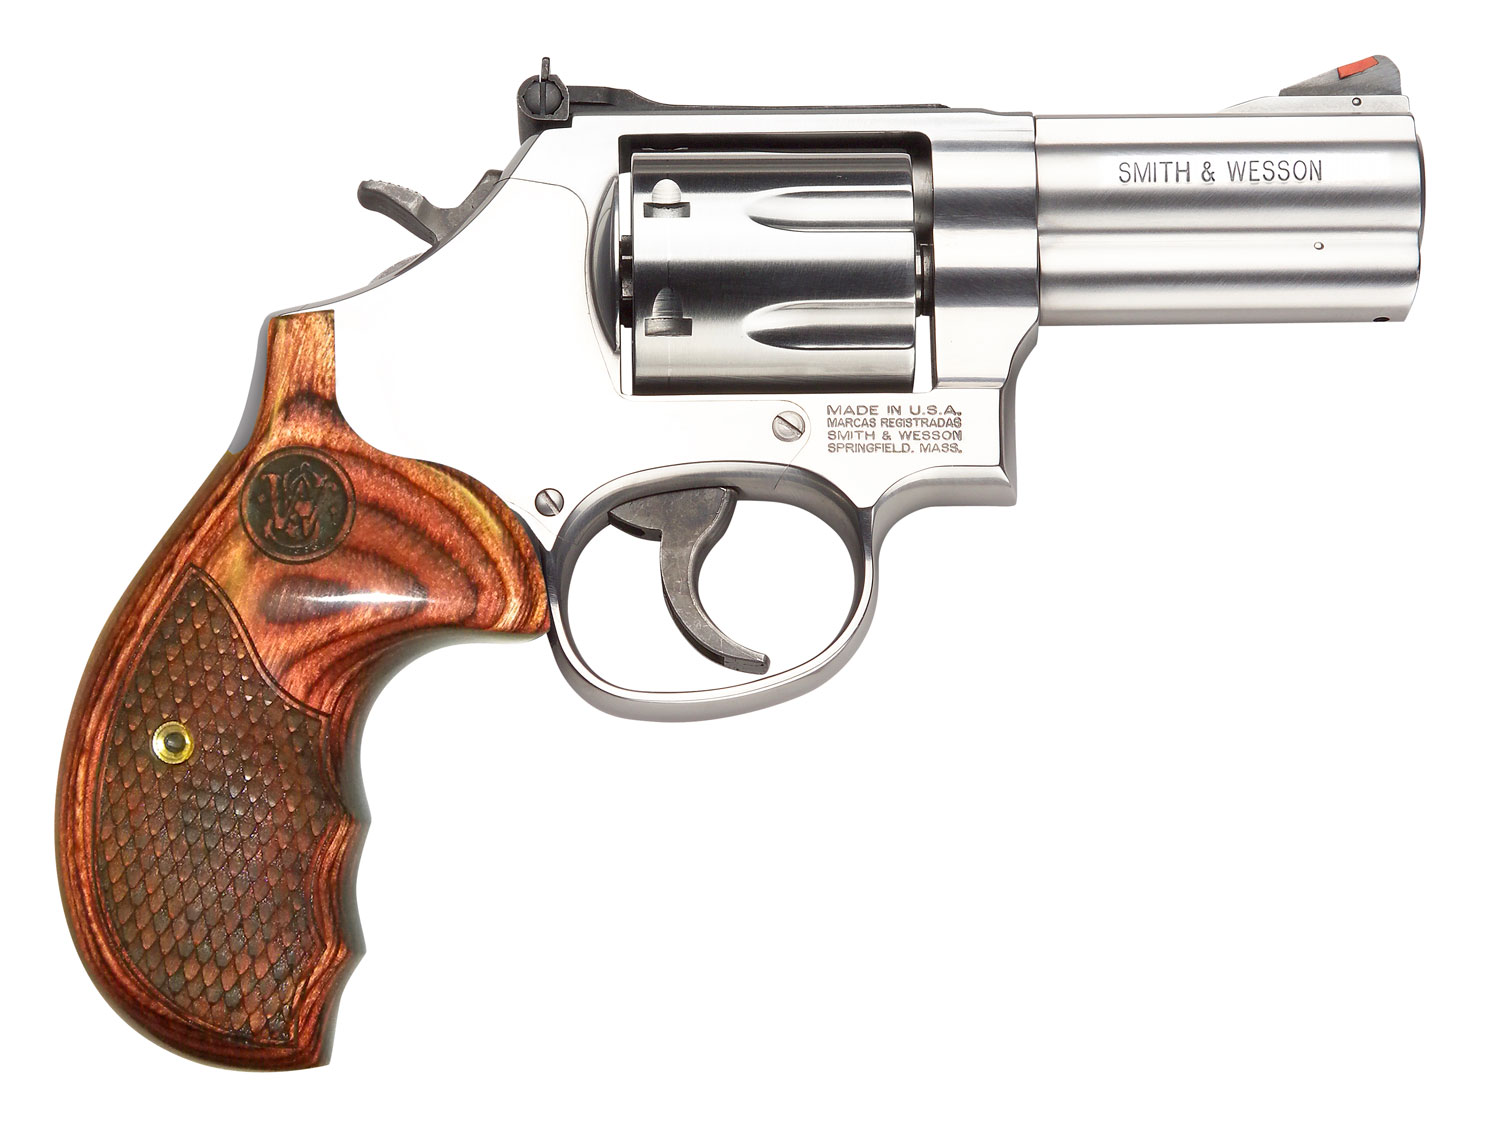 Smith & Wesson 150713 686 Plus Deluxe Single/Double 357 Magnum 3